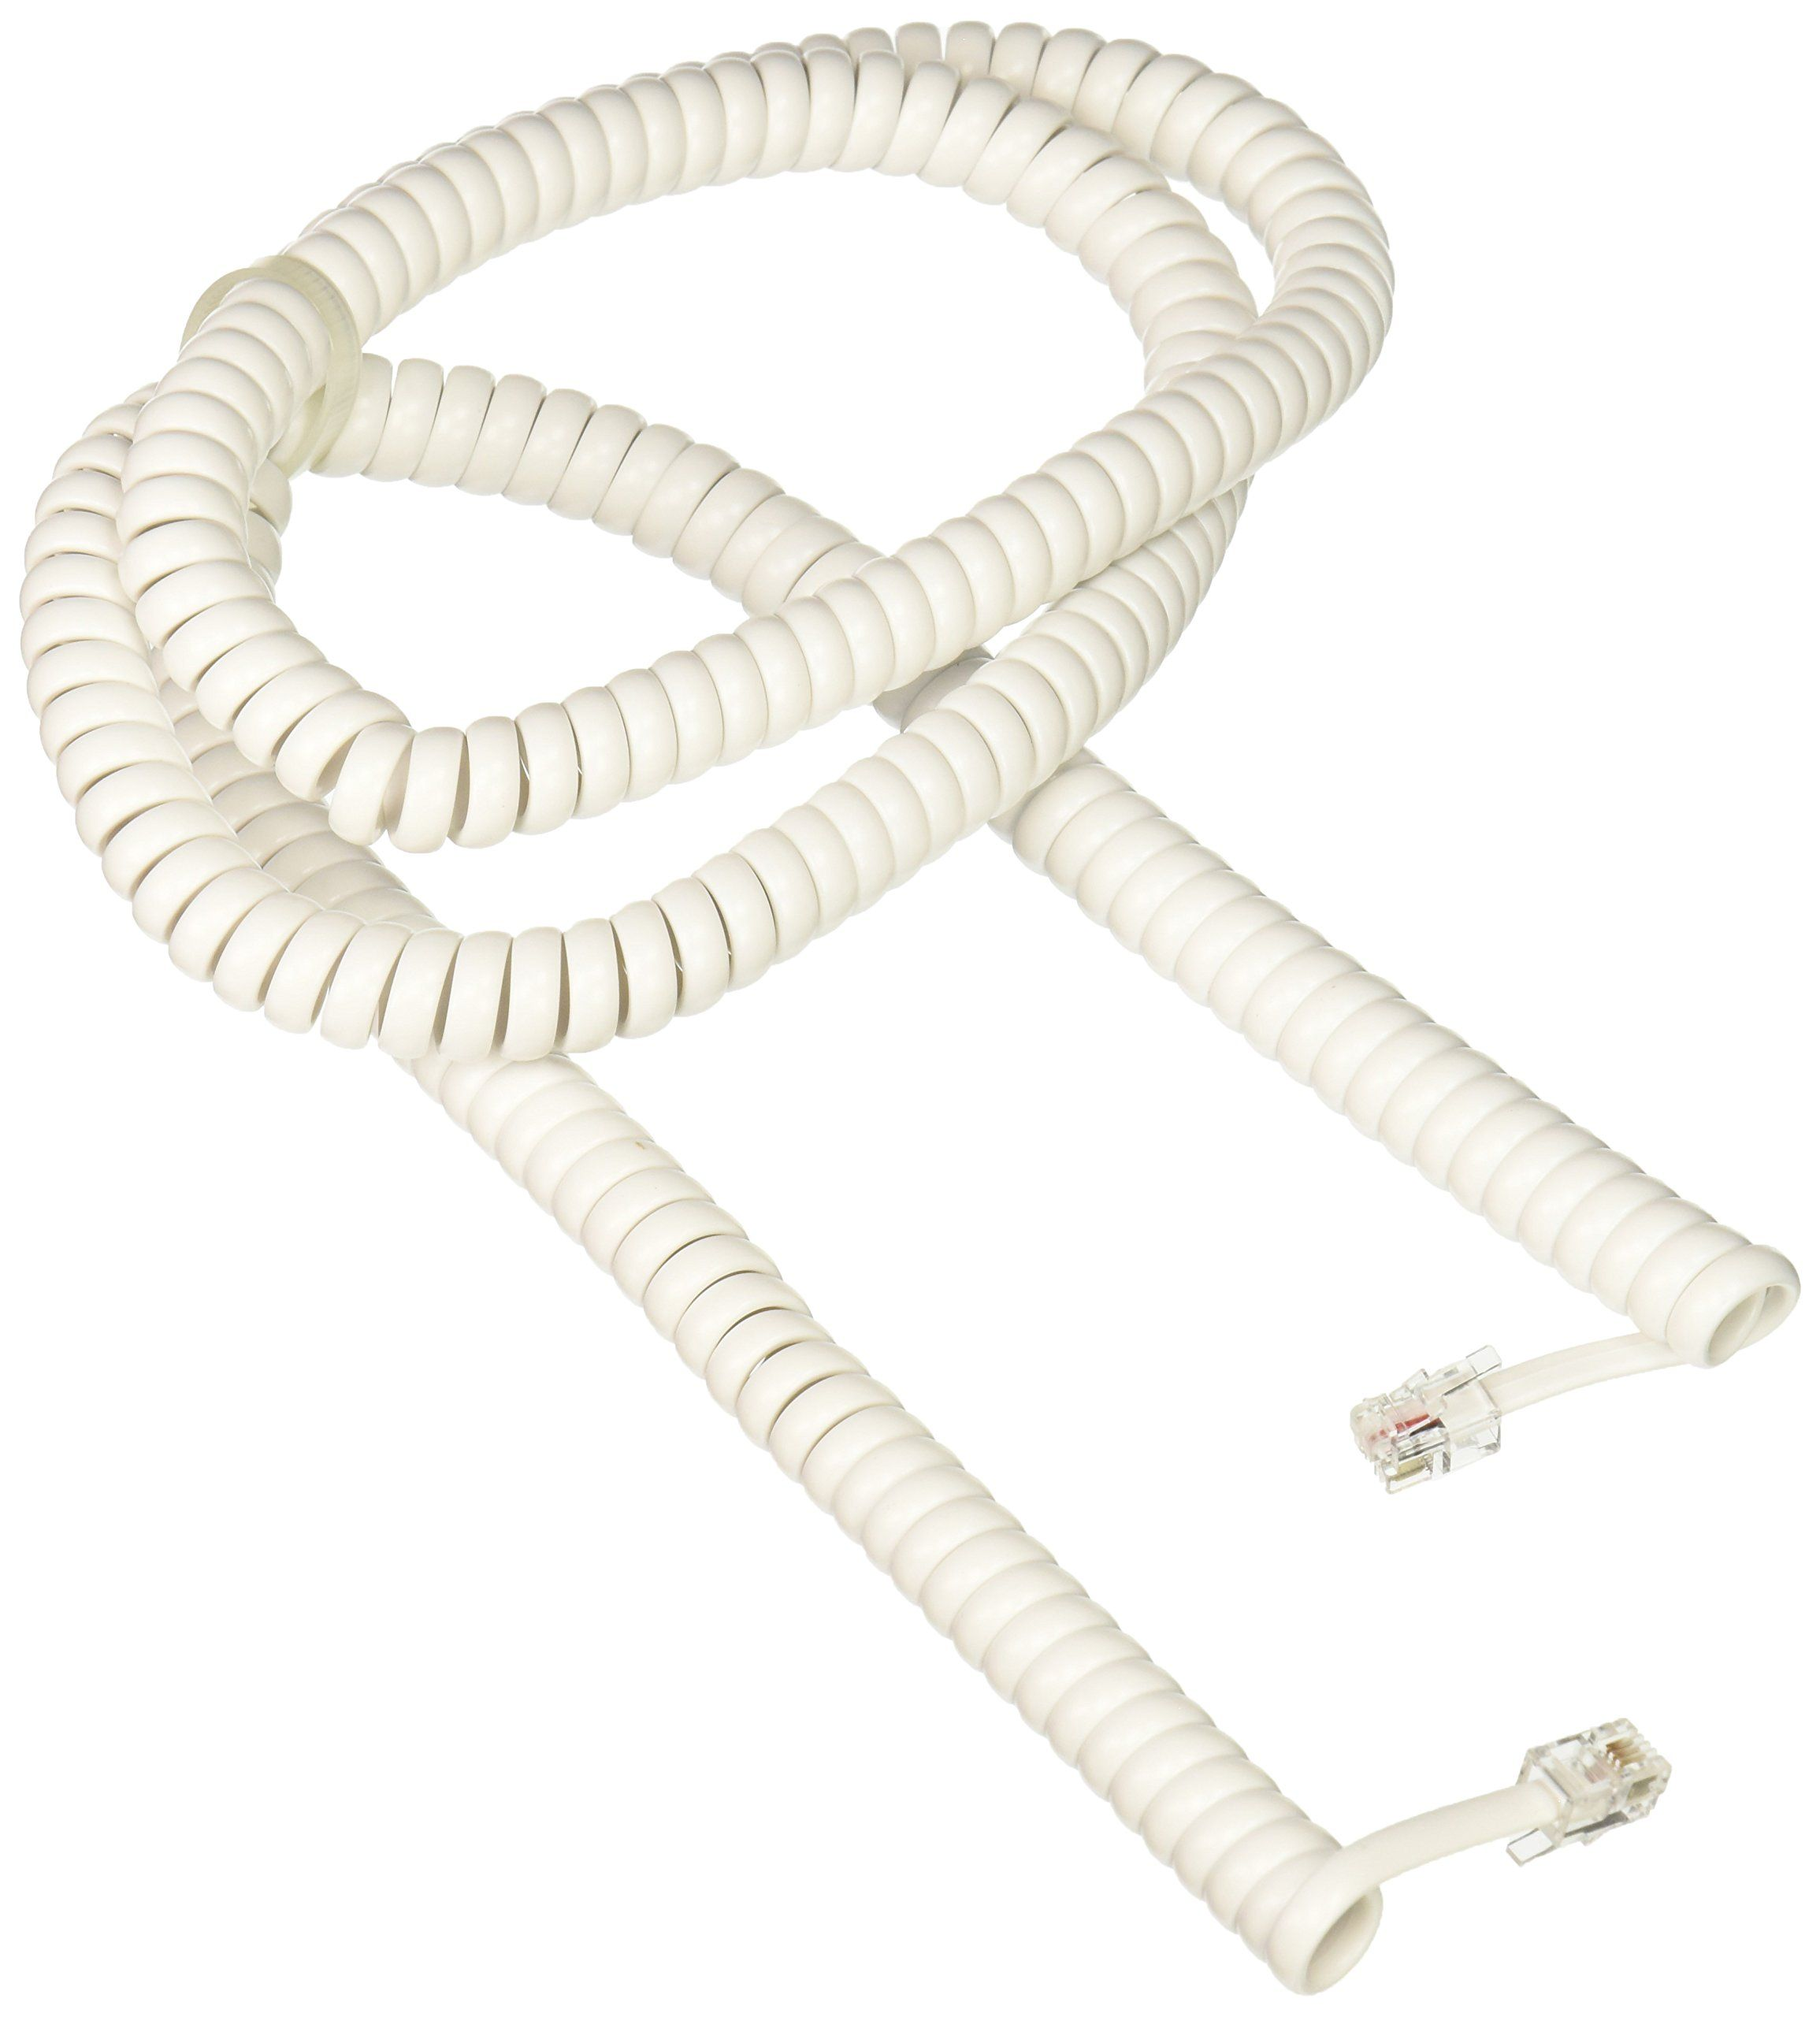 Rca 25 Feet Handset Coil Cord White Tp282w Handset Wholesale Hair Accessories Phone Cables